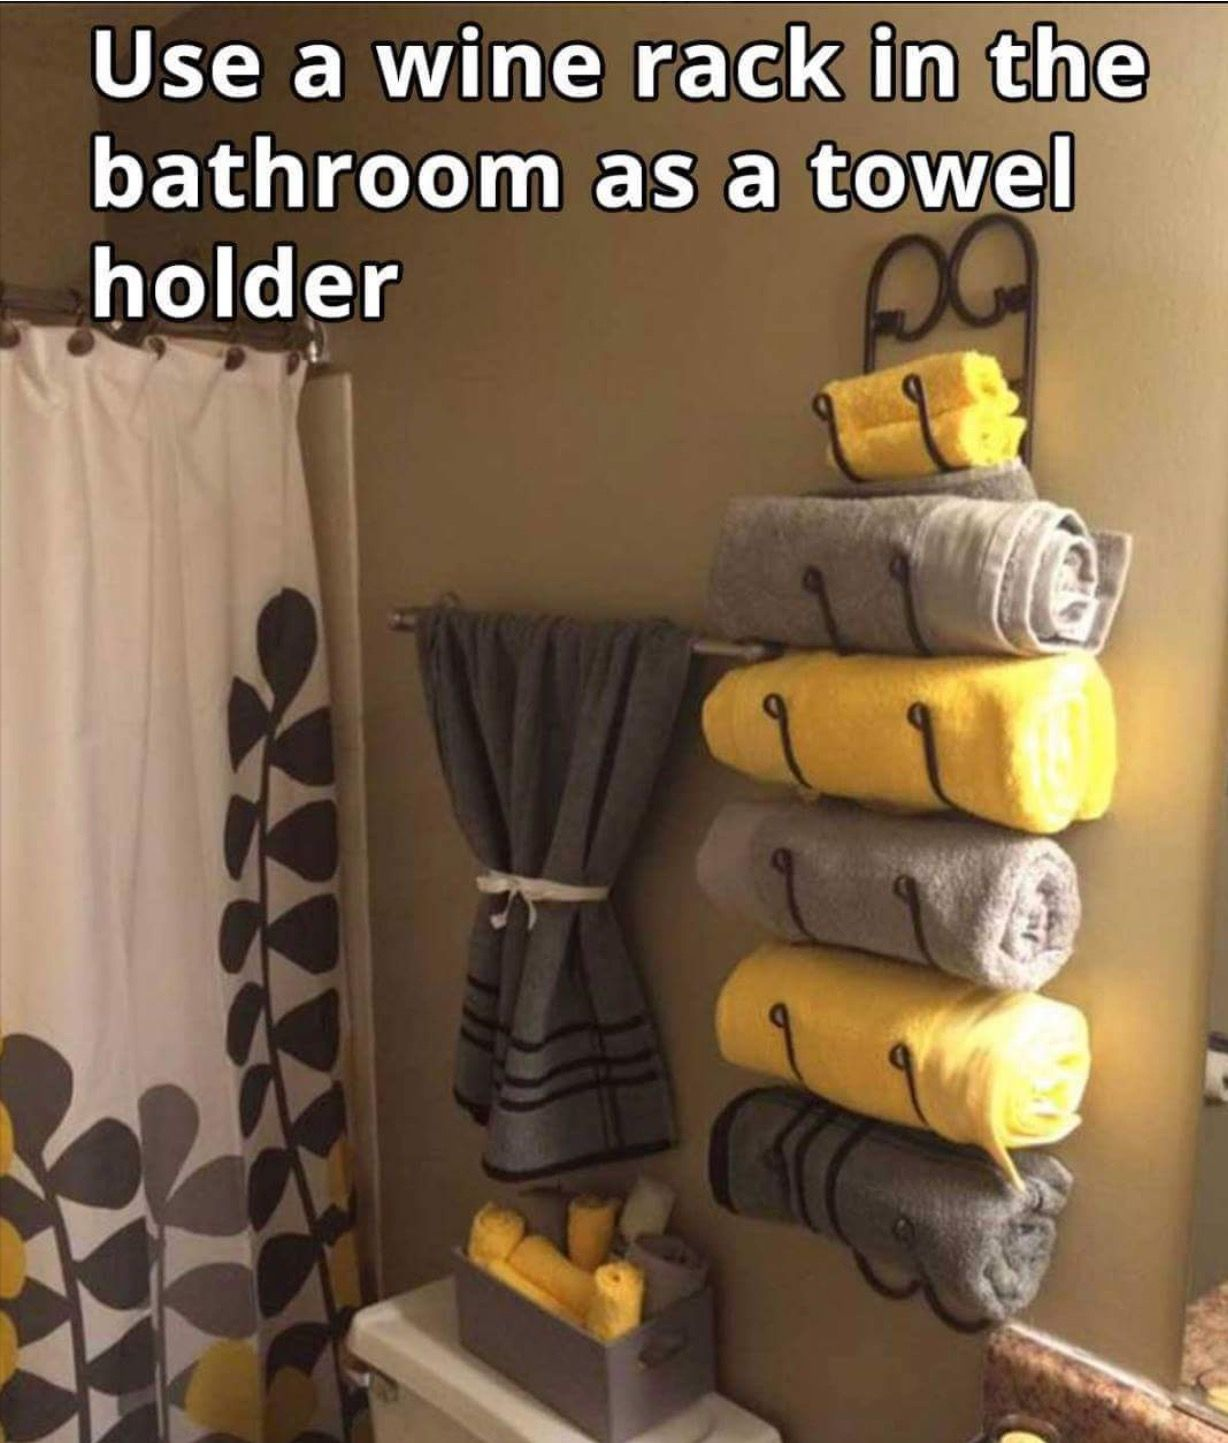 Pin By Candi B On Home Hacks Pinterest - Cute bathroom towels for small bathroom ideas